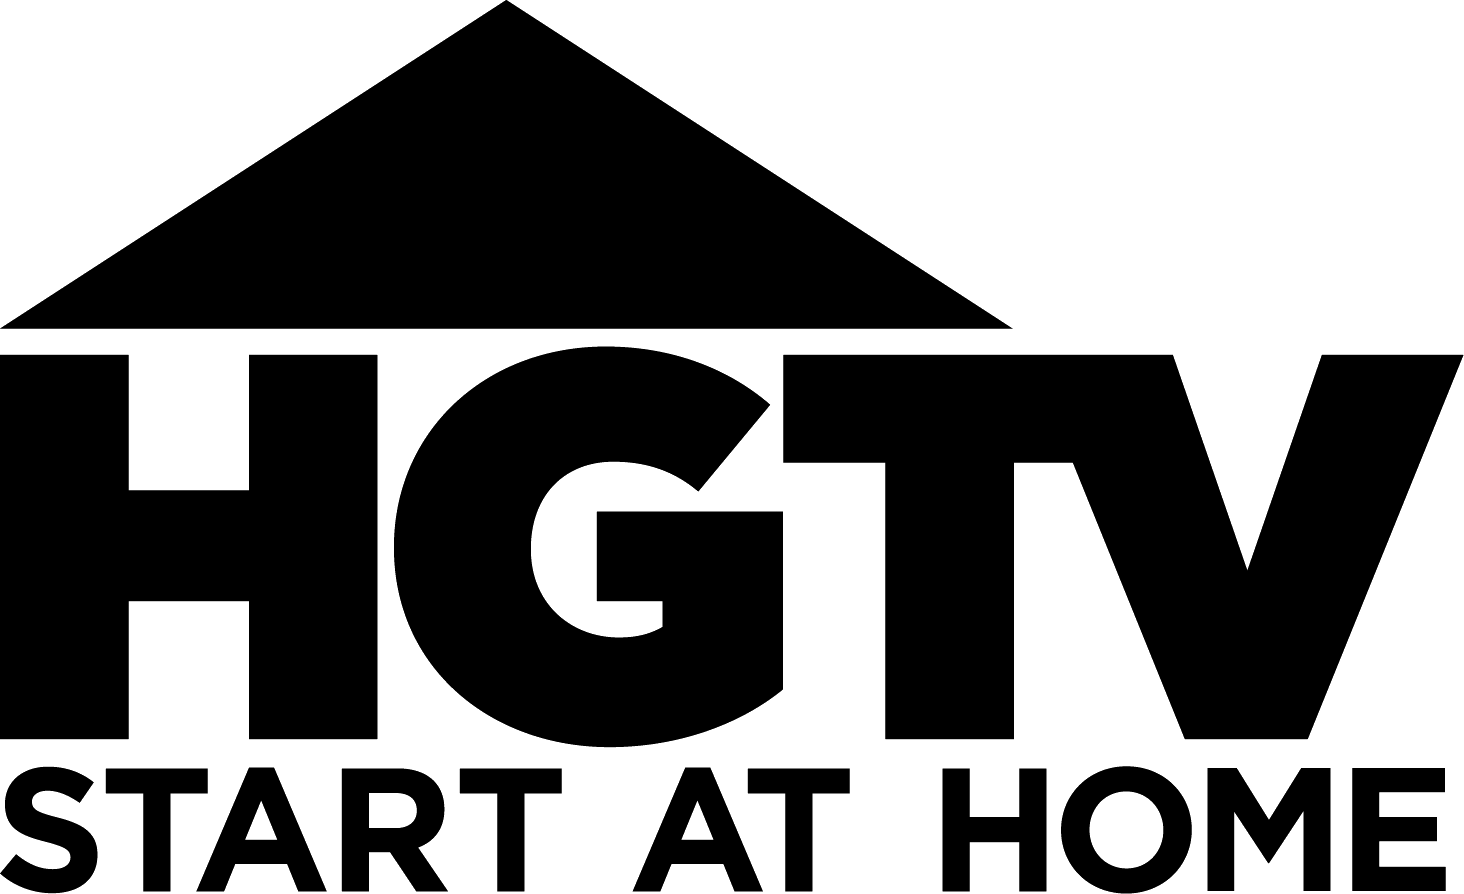 Hgtv Logopedia The Logo And Branding Site: home garden television